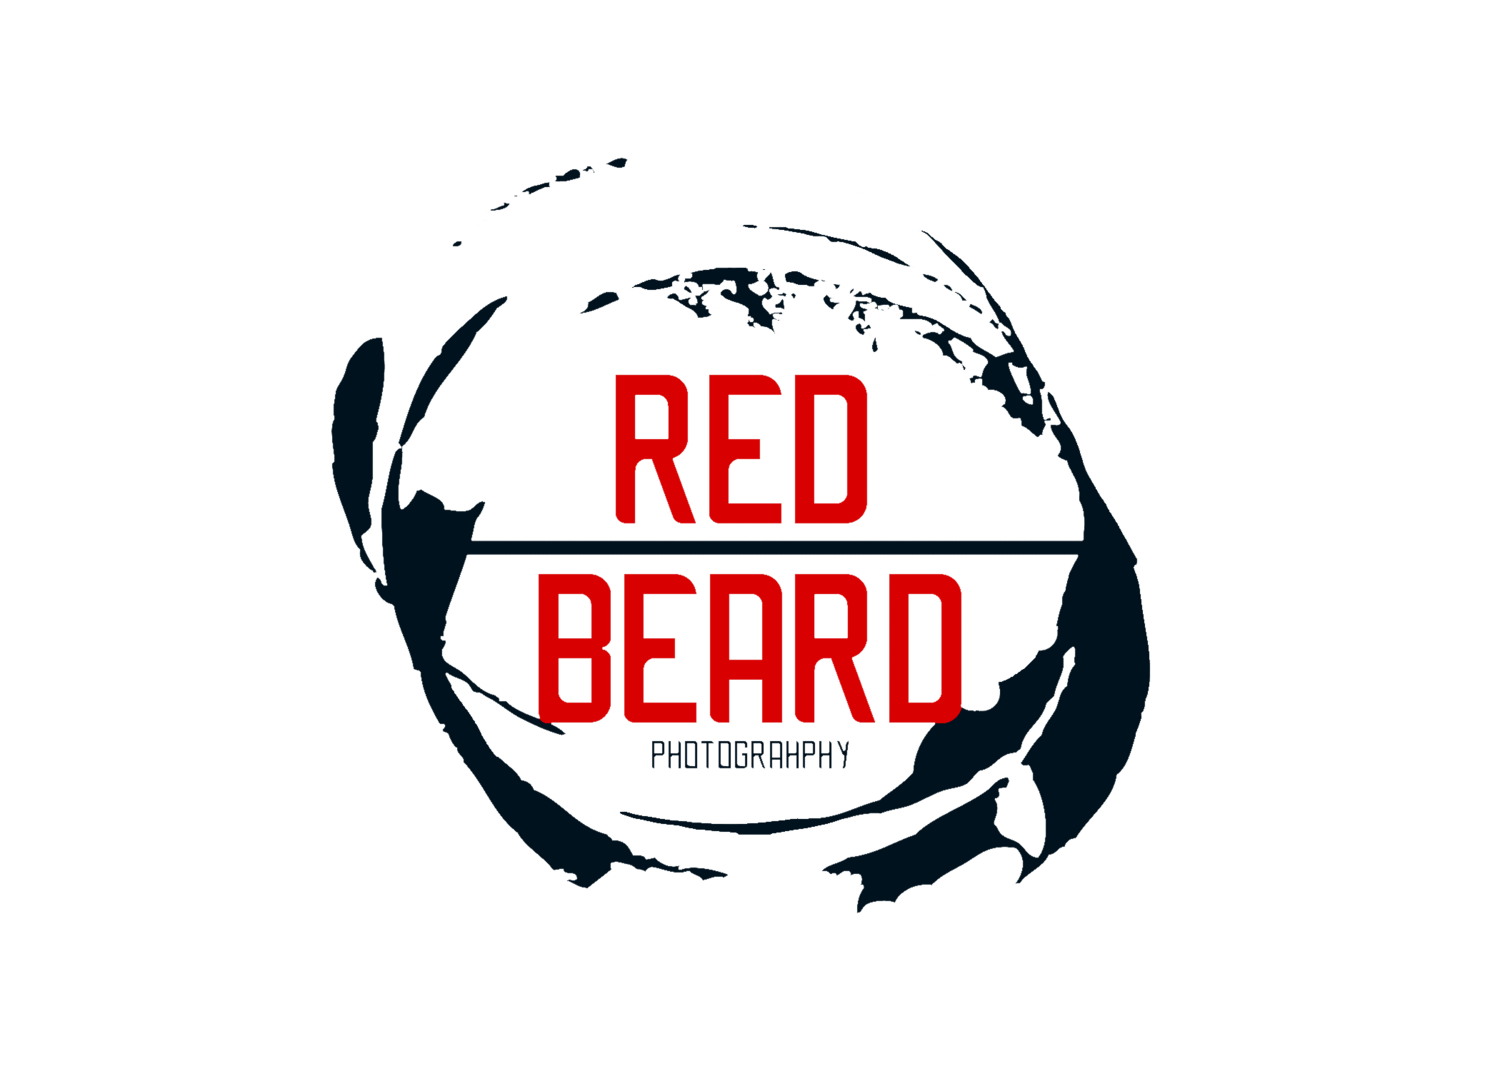 The Red Beard Photography